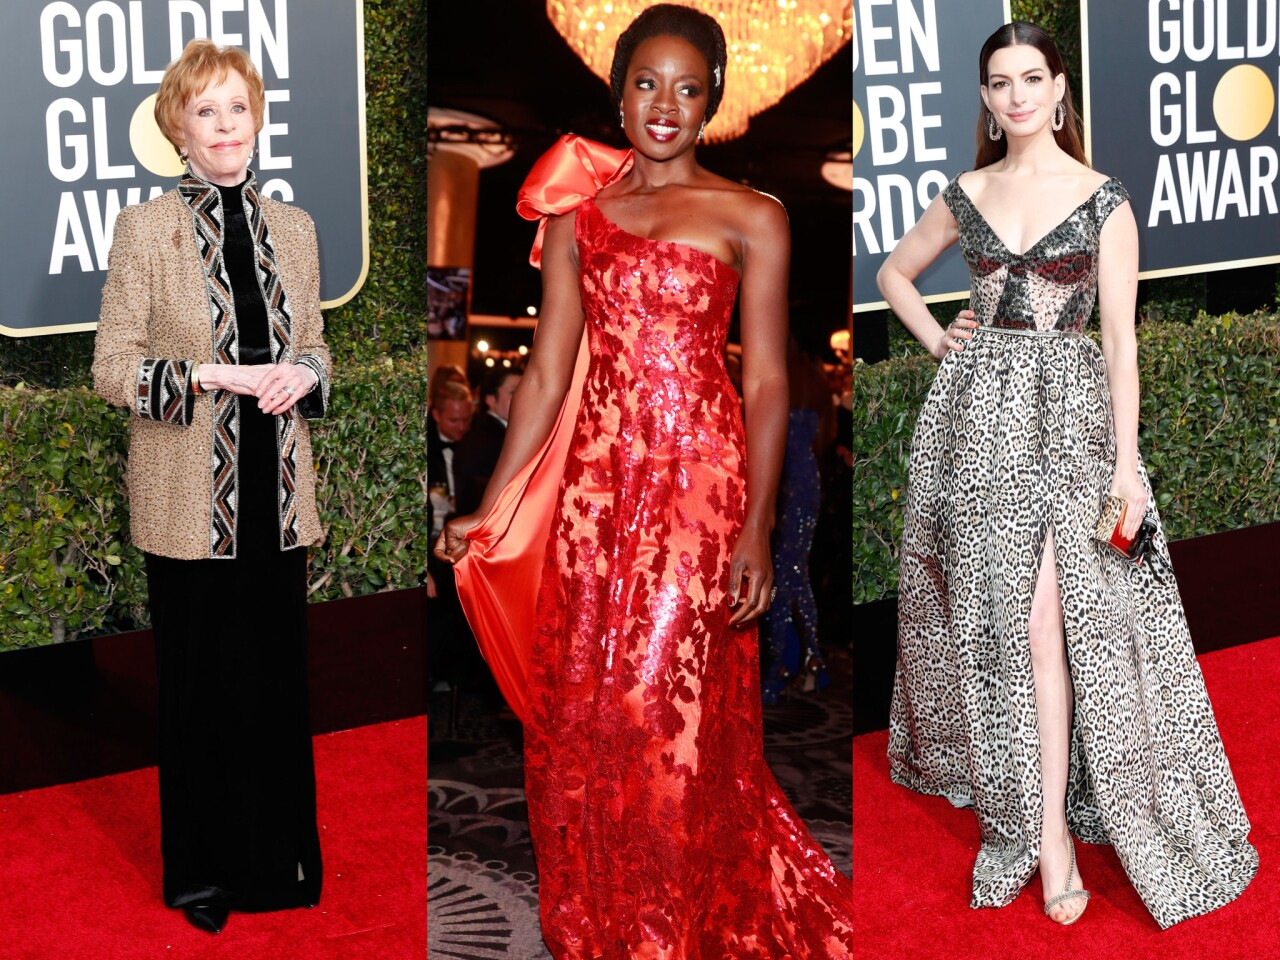 Golden Globes 2019: Best- and worst-dressed